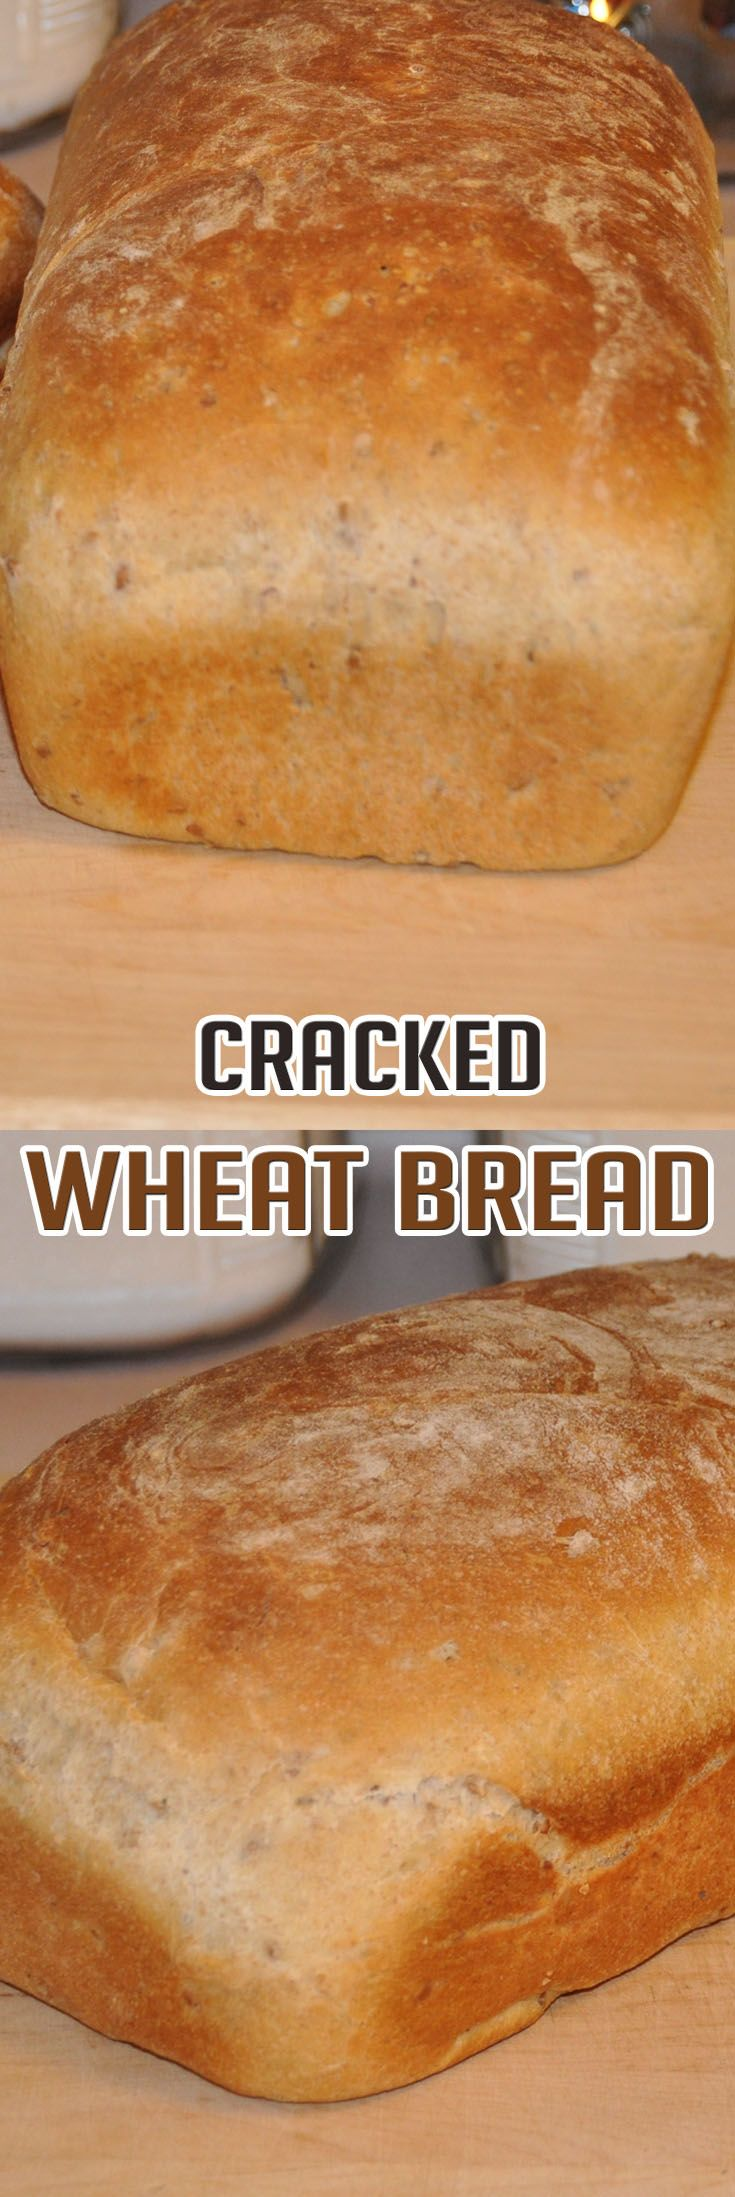 Easy Cracked Wheat Bread Wheat Recipes Wheat Bread Wheat Bread Recipe